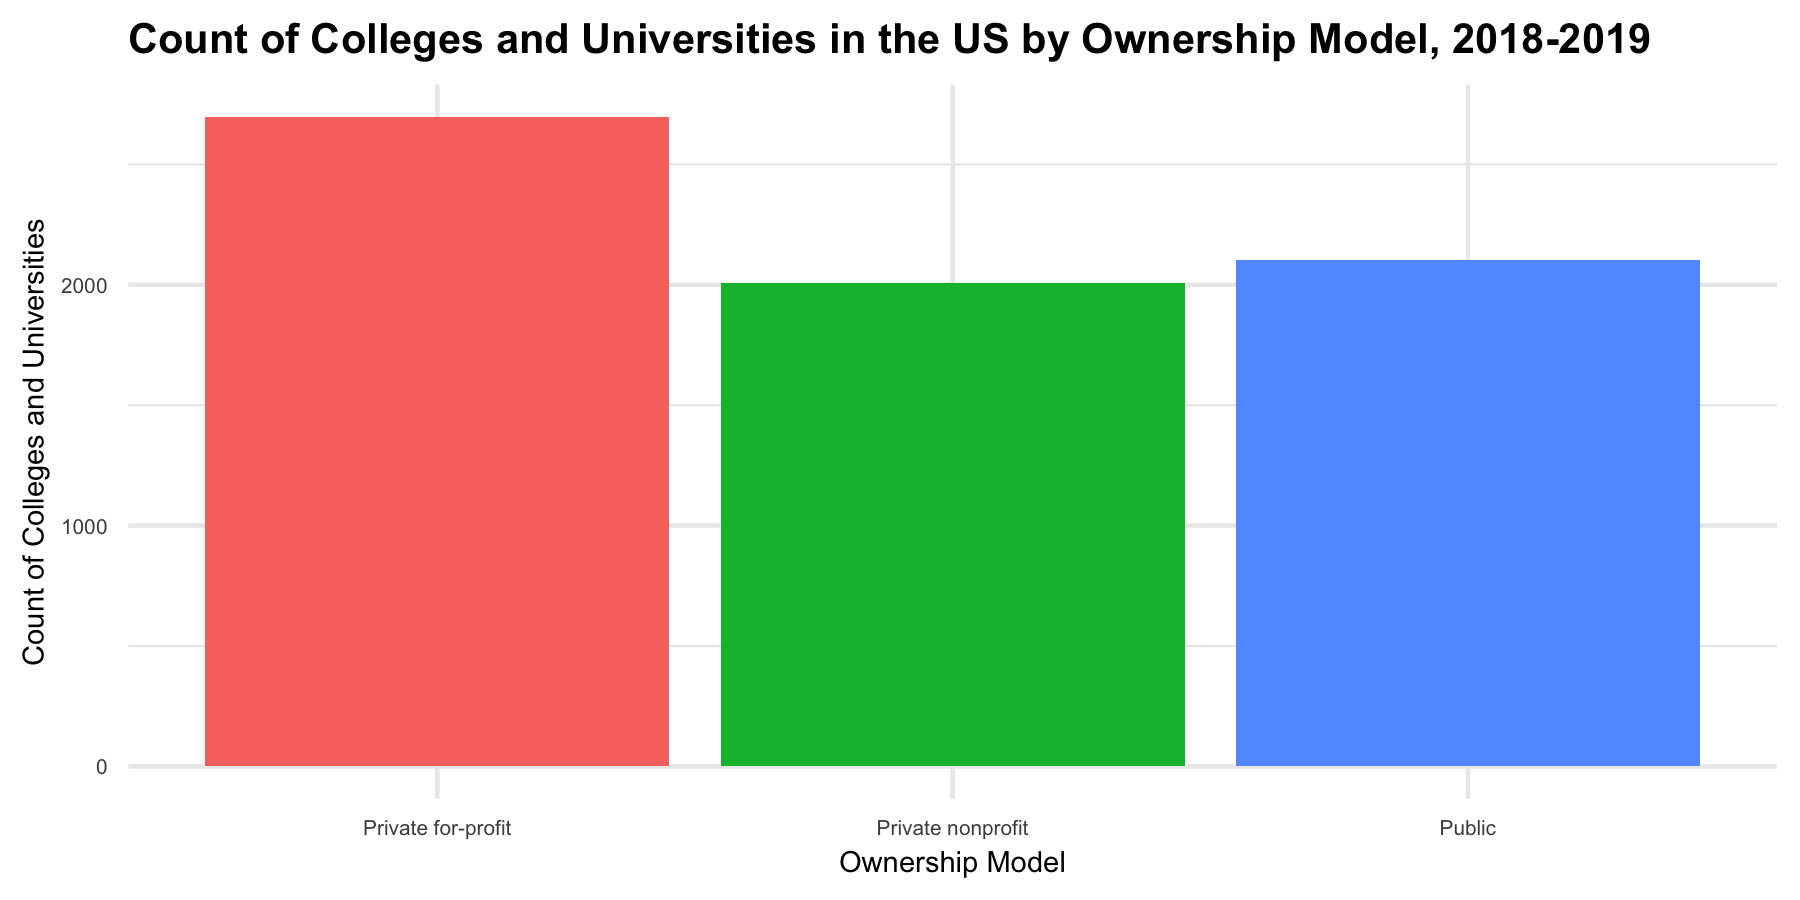 Figure 5: R output when student plots the number of colleges and universities by their ownership model in the 2018-2019 academic year.